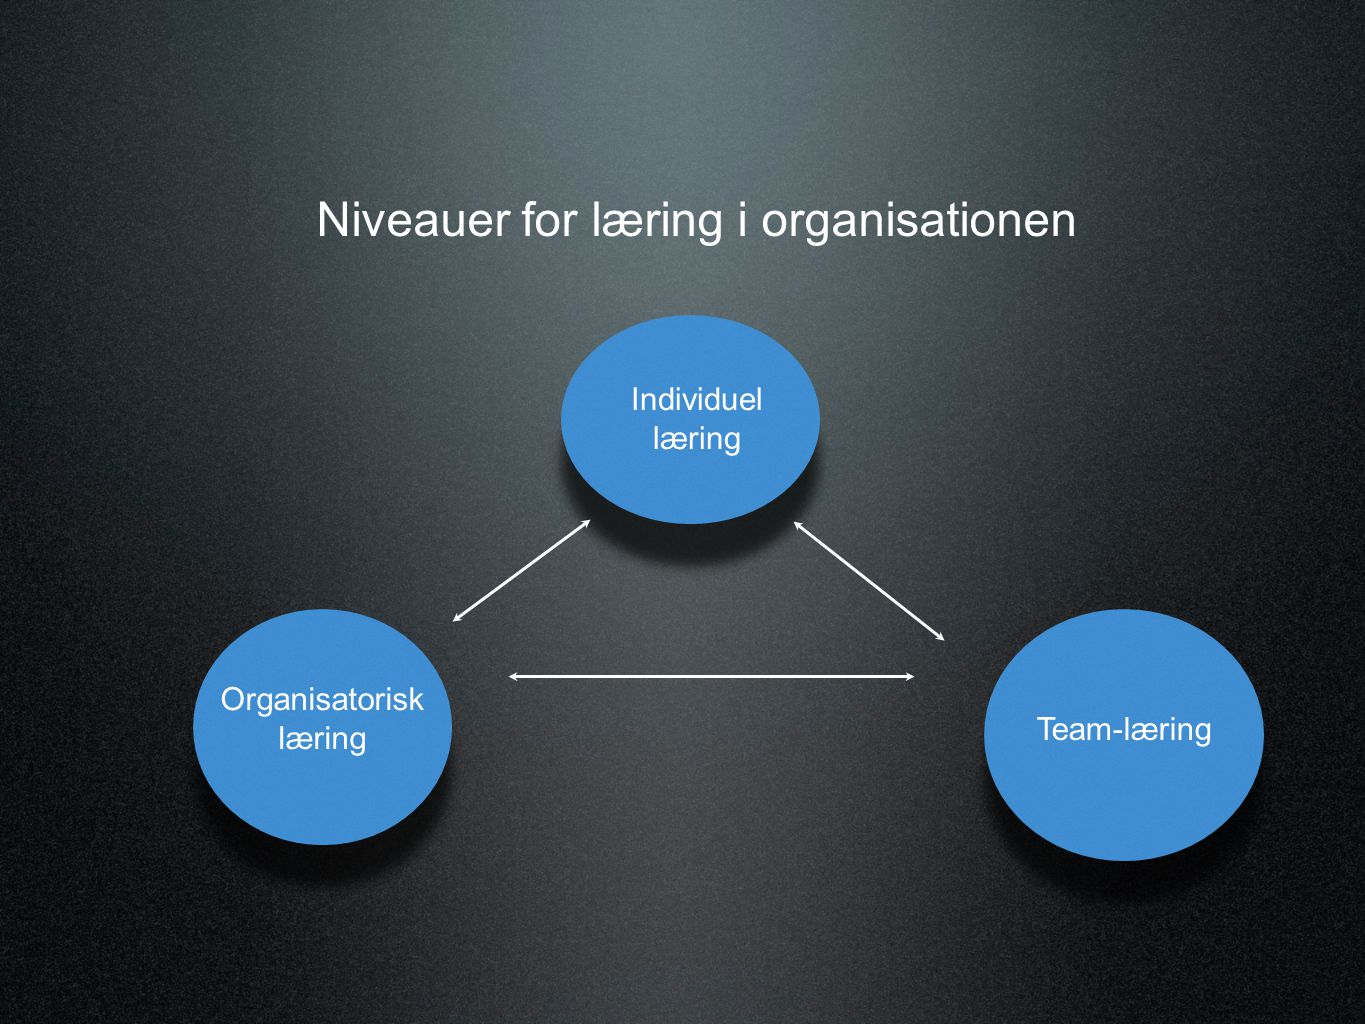 Niveauer for læring i organisationen